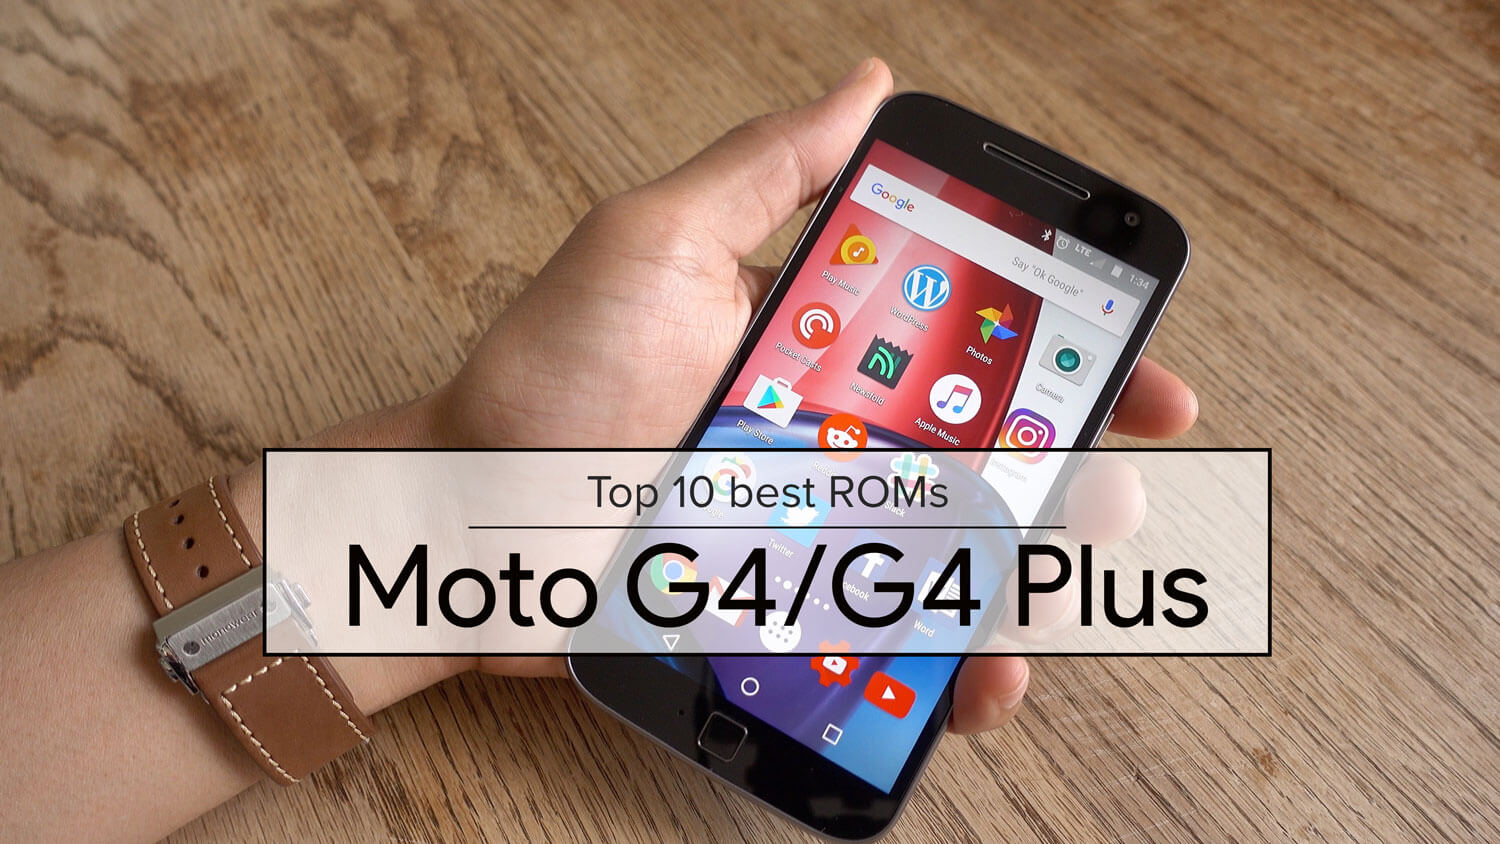 Top 10 Best Custom ROMs for the Motorola Moto G4/G4 Plus